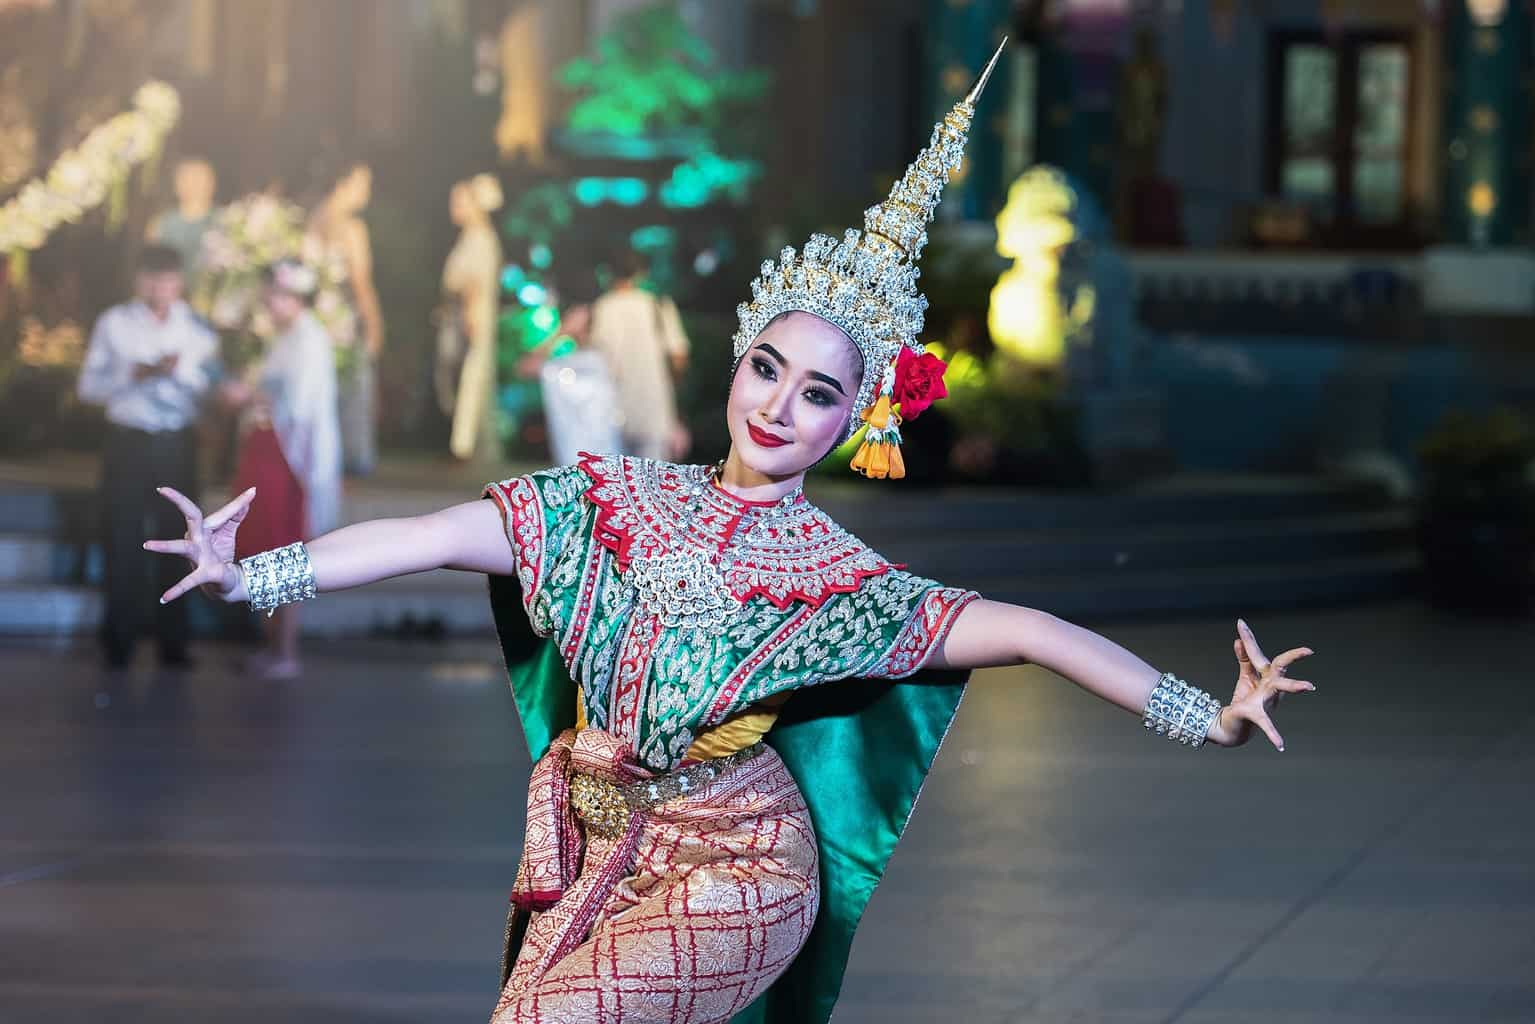 Dancer in colorful clothes and intricately designed headwear